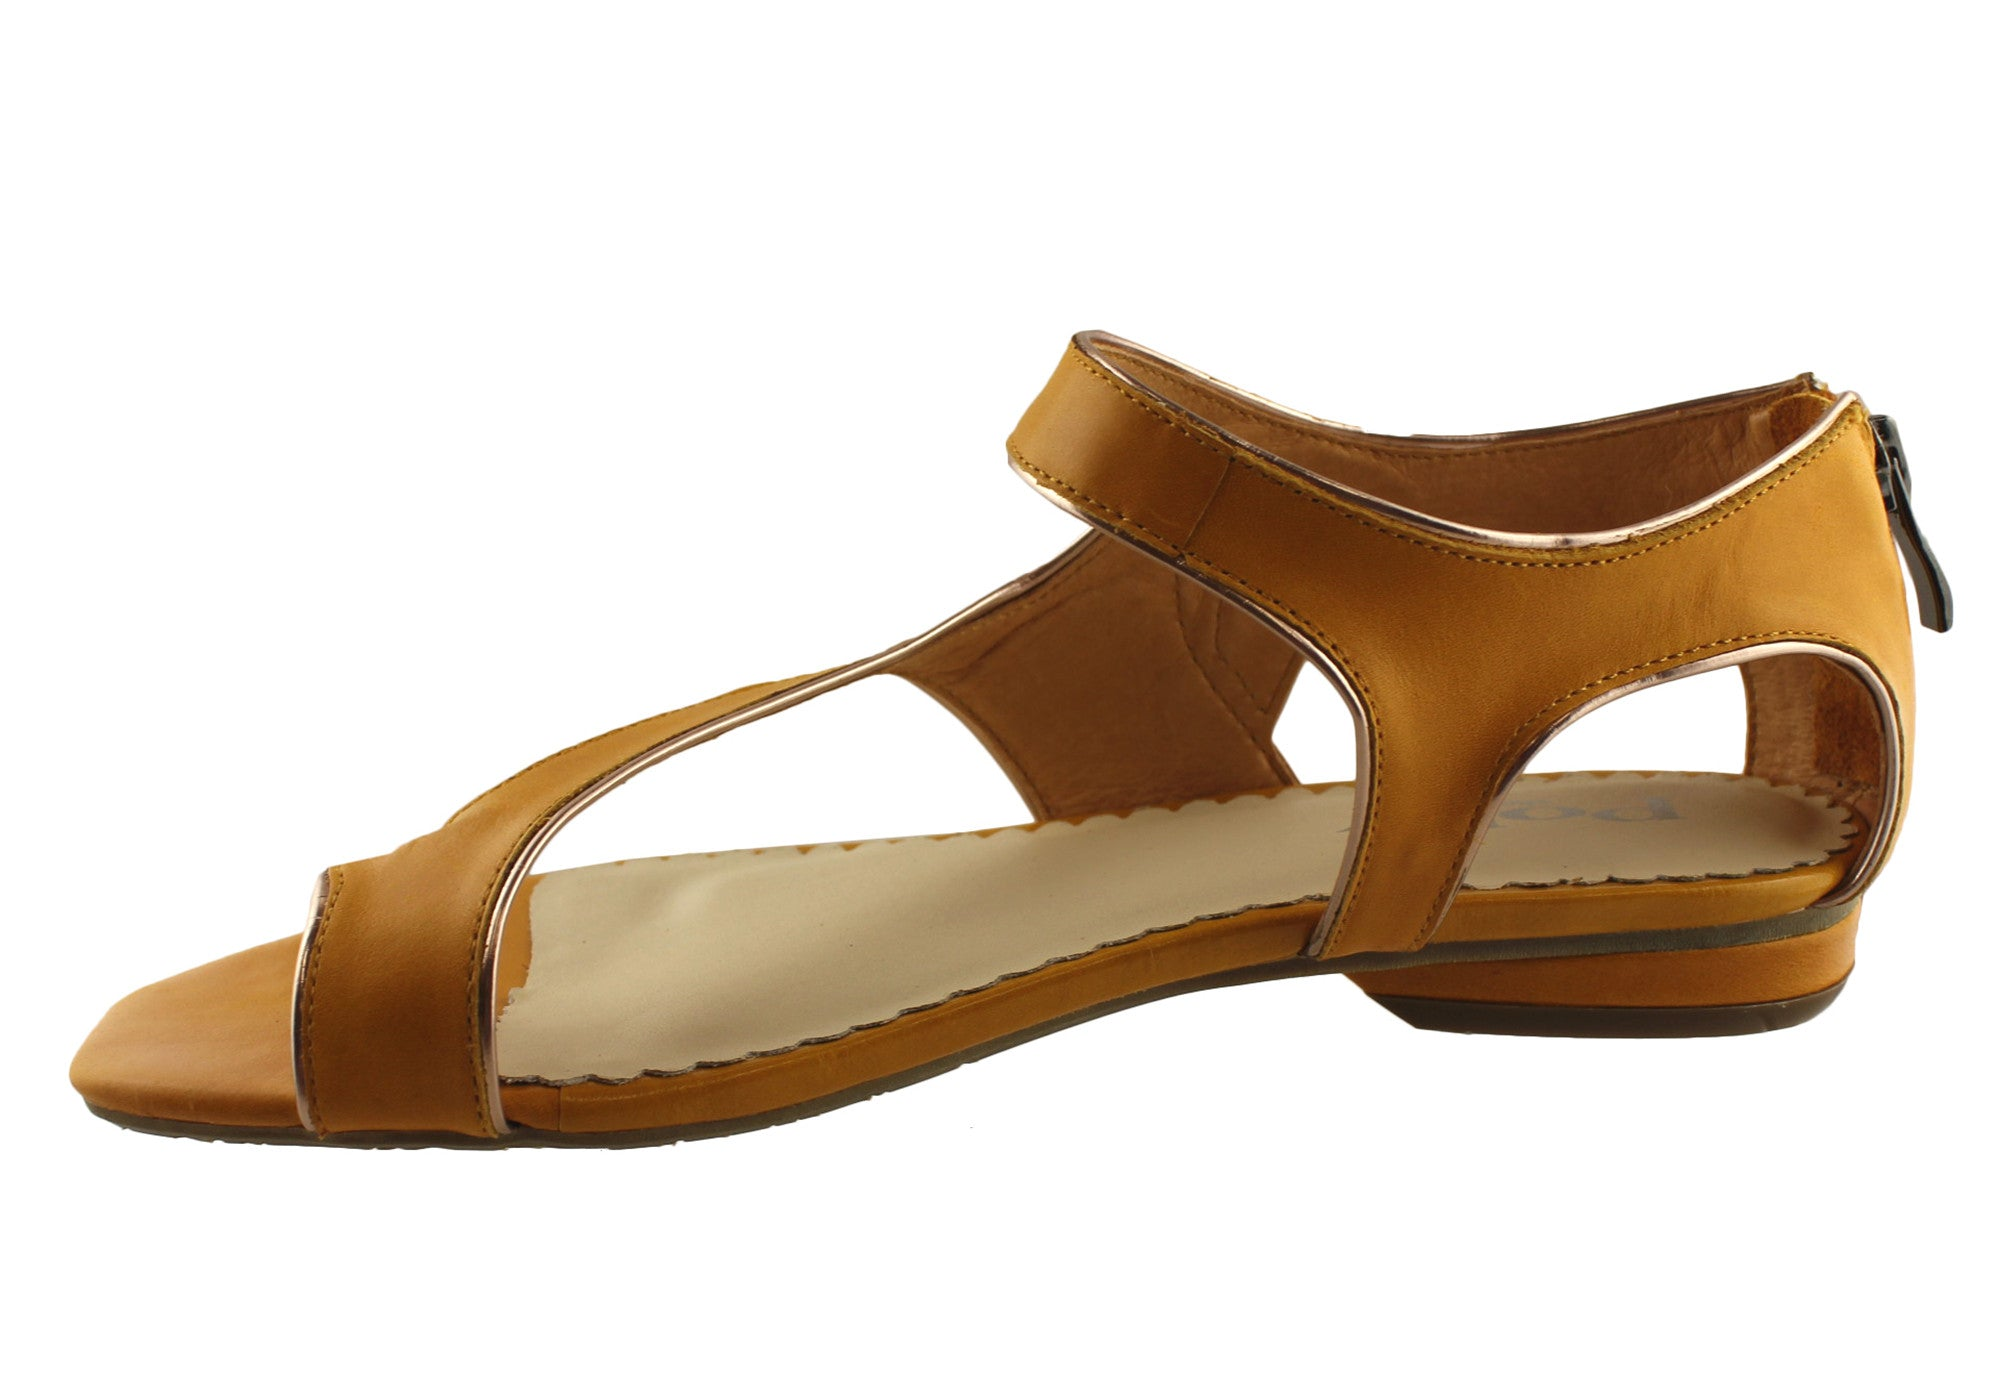 Jaffa by Polly Shoes Womens Leather Strappy Sandals